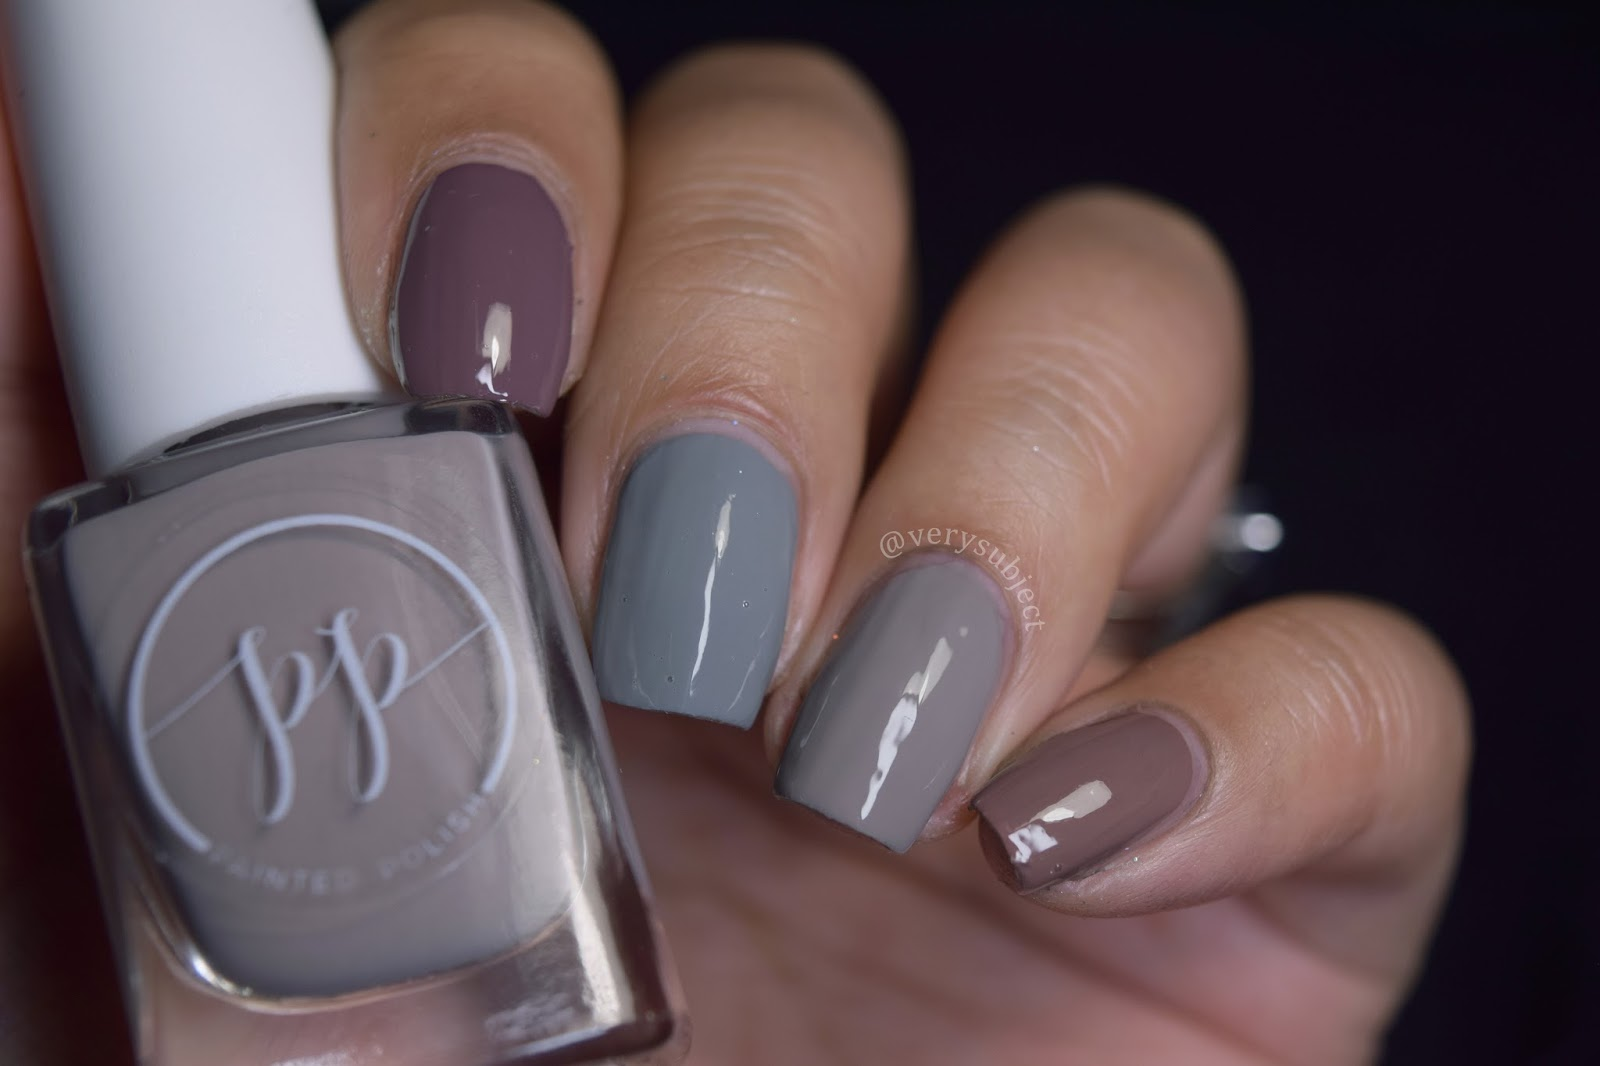 Painted Polish: Shades of Taupe - VerySubject